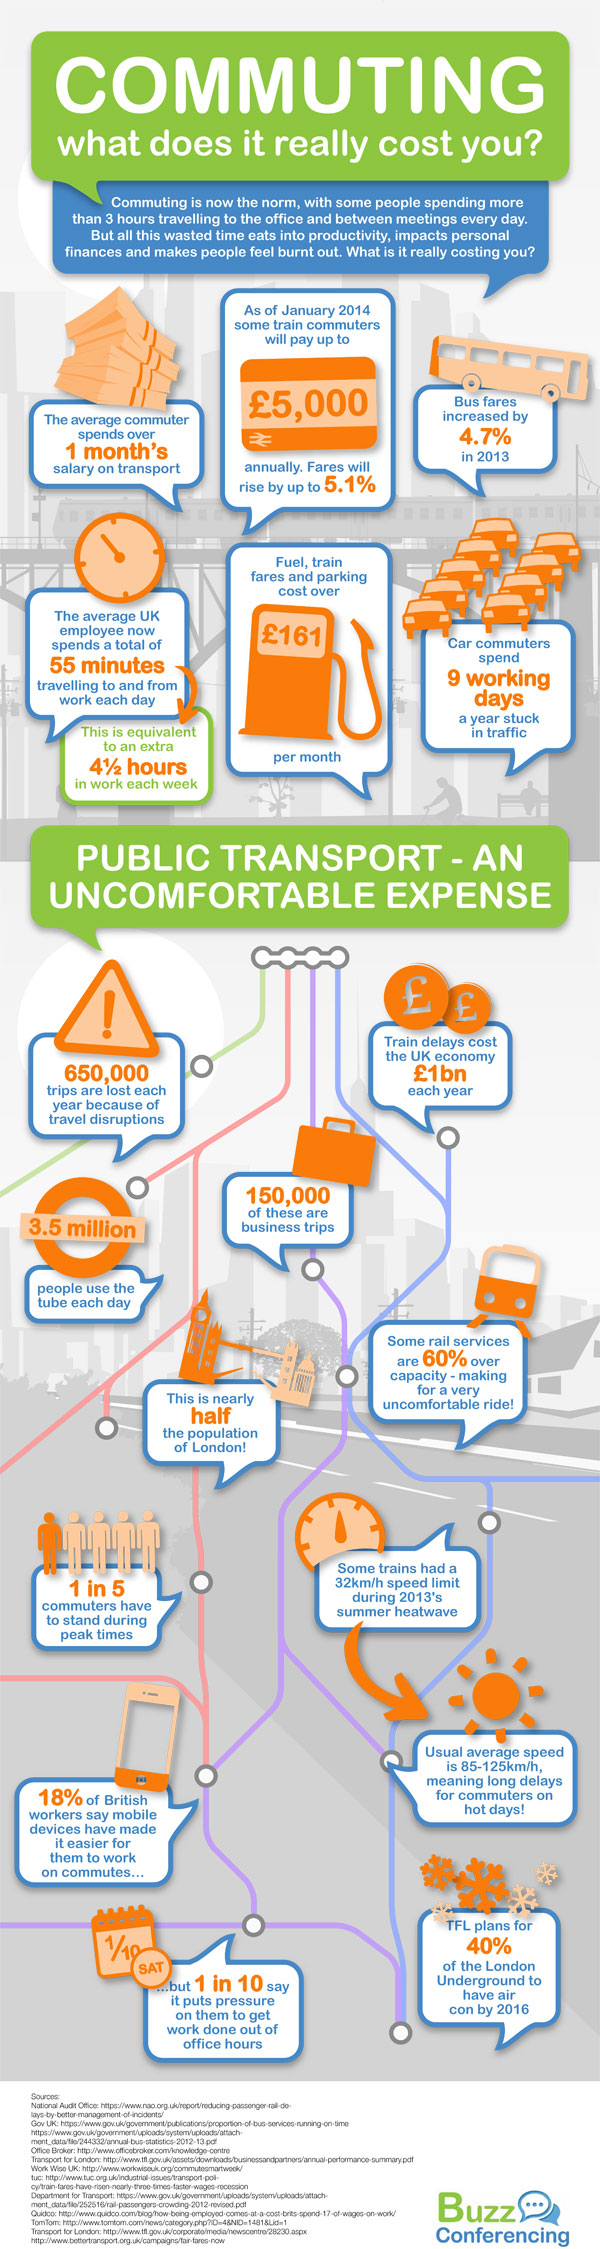 Commuting-What-does-it-really-cost